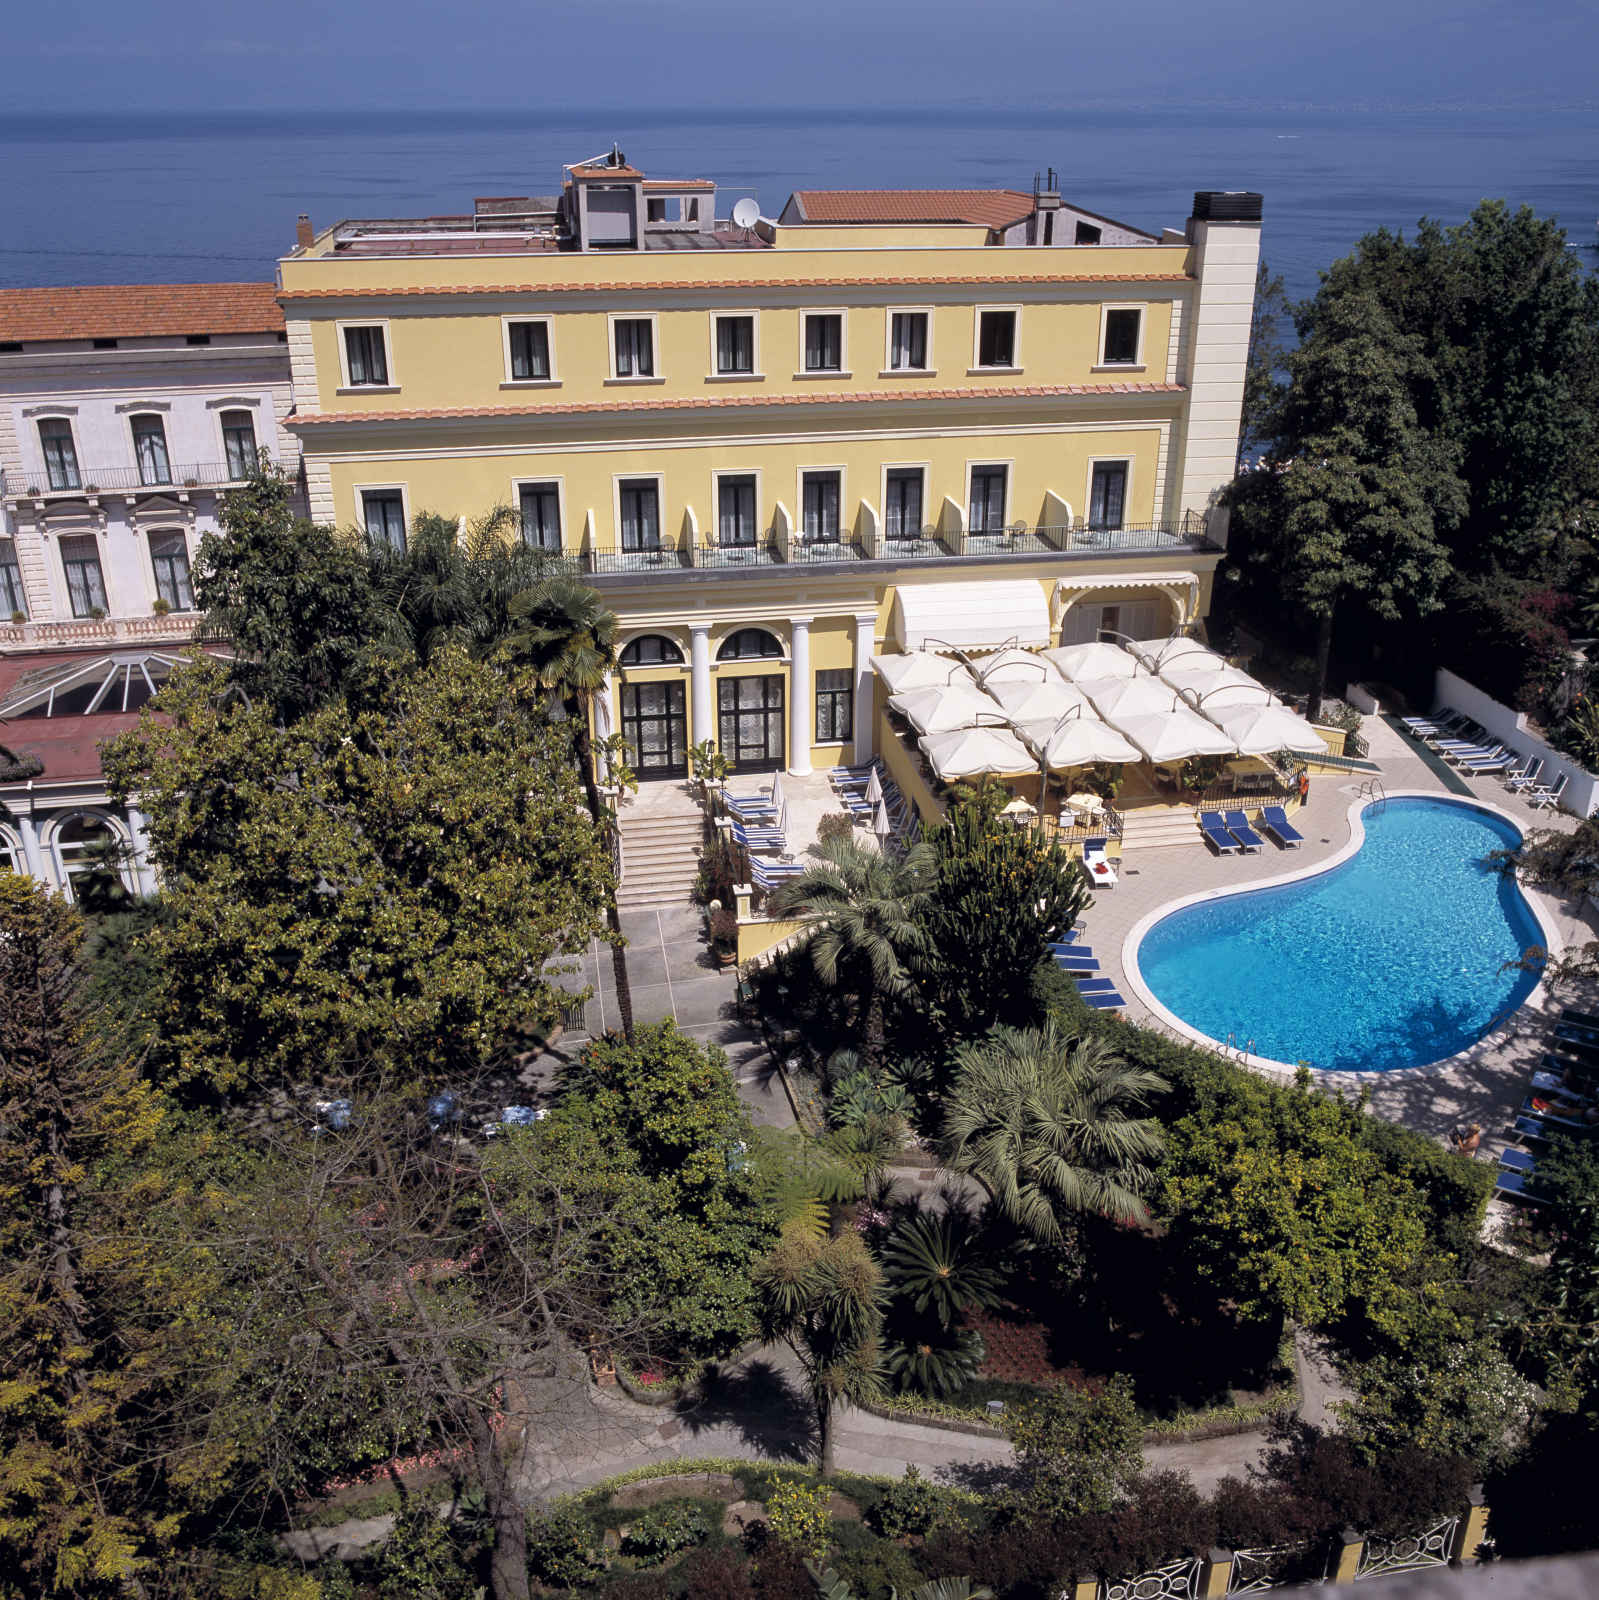 Imperial Hotel Tramontano - 4*